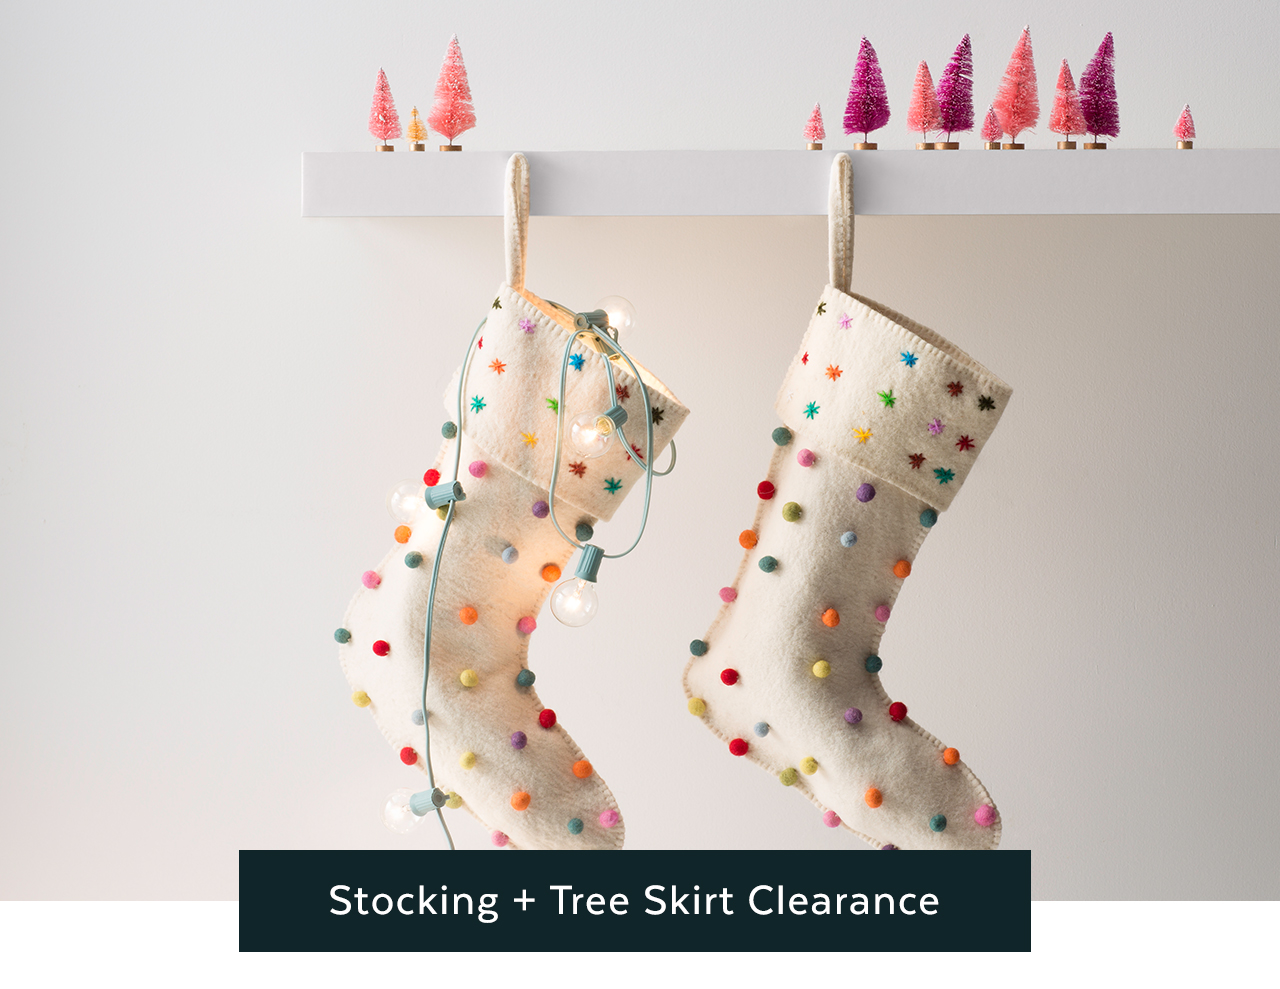 Stocking and Tree Skirt Clearance